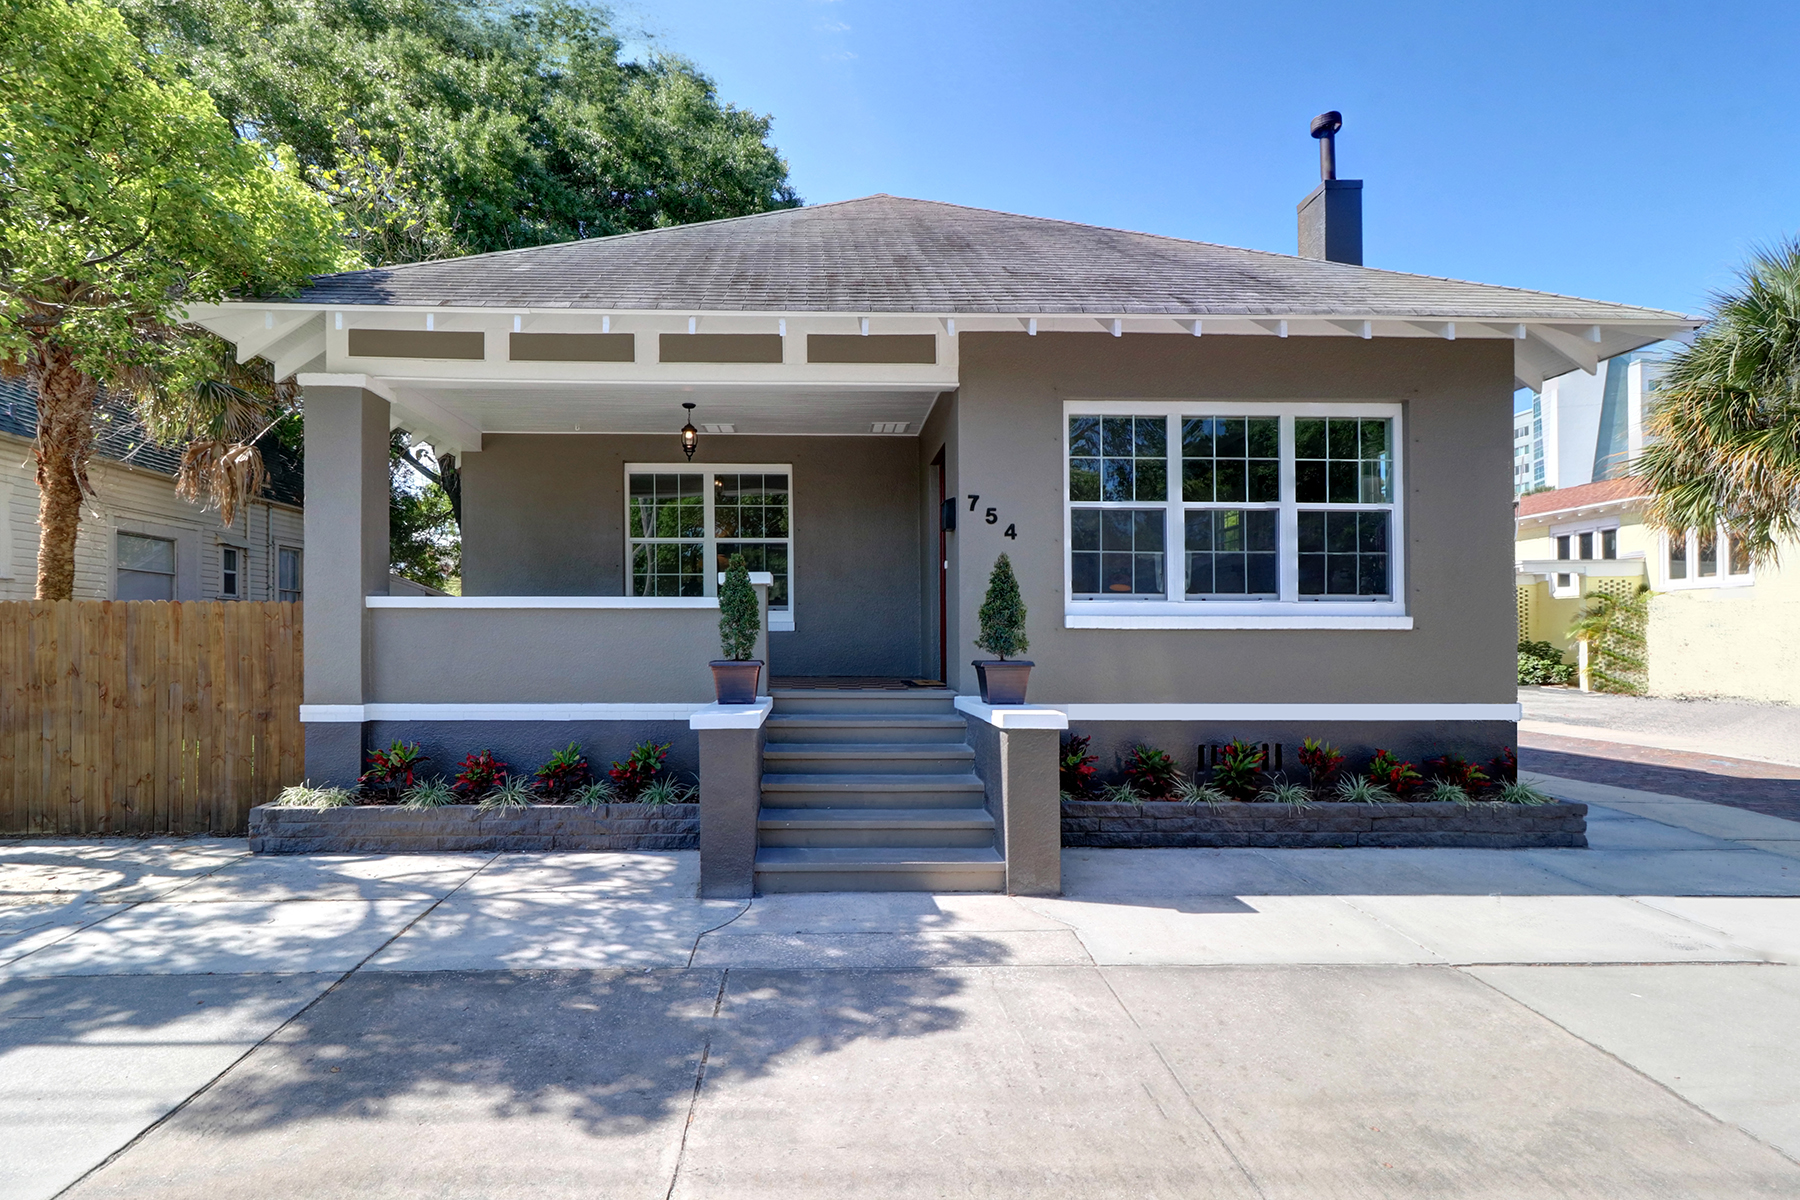 Single Family Home for Sale at DOWNTOWN ST PETE 754 4th Ave N St. Petersburg, Florida, 33701 United States